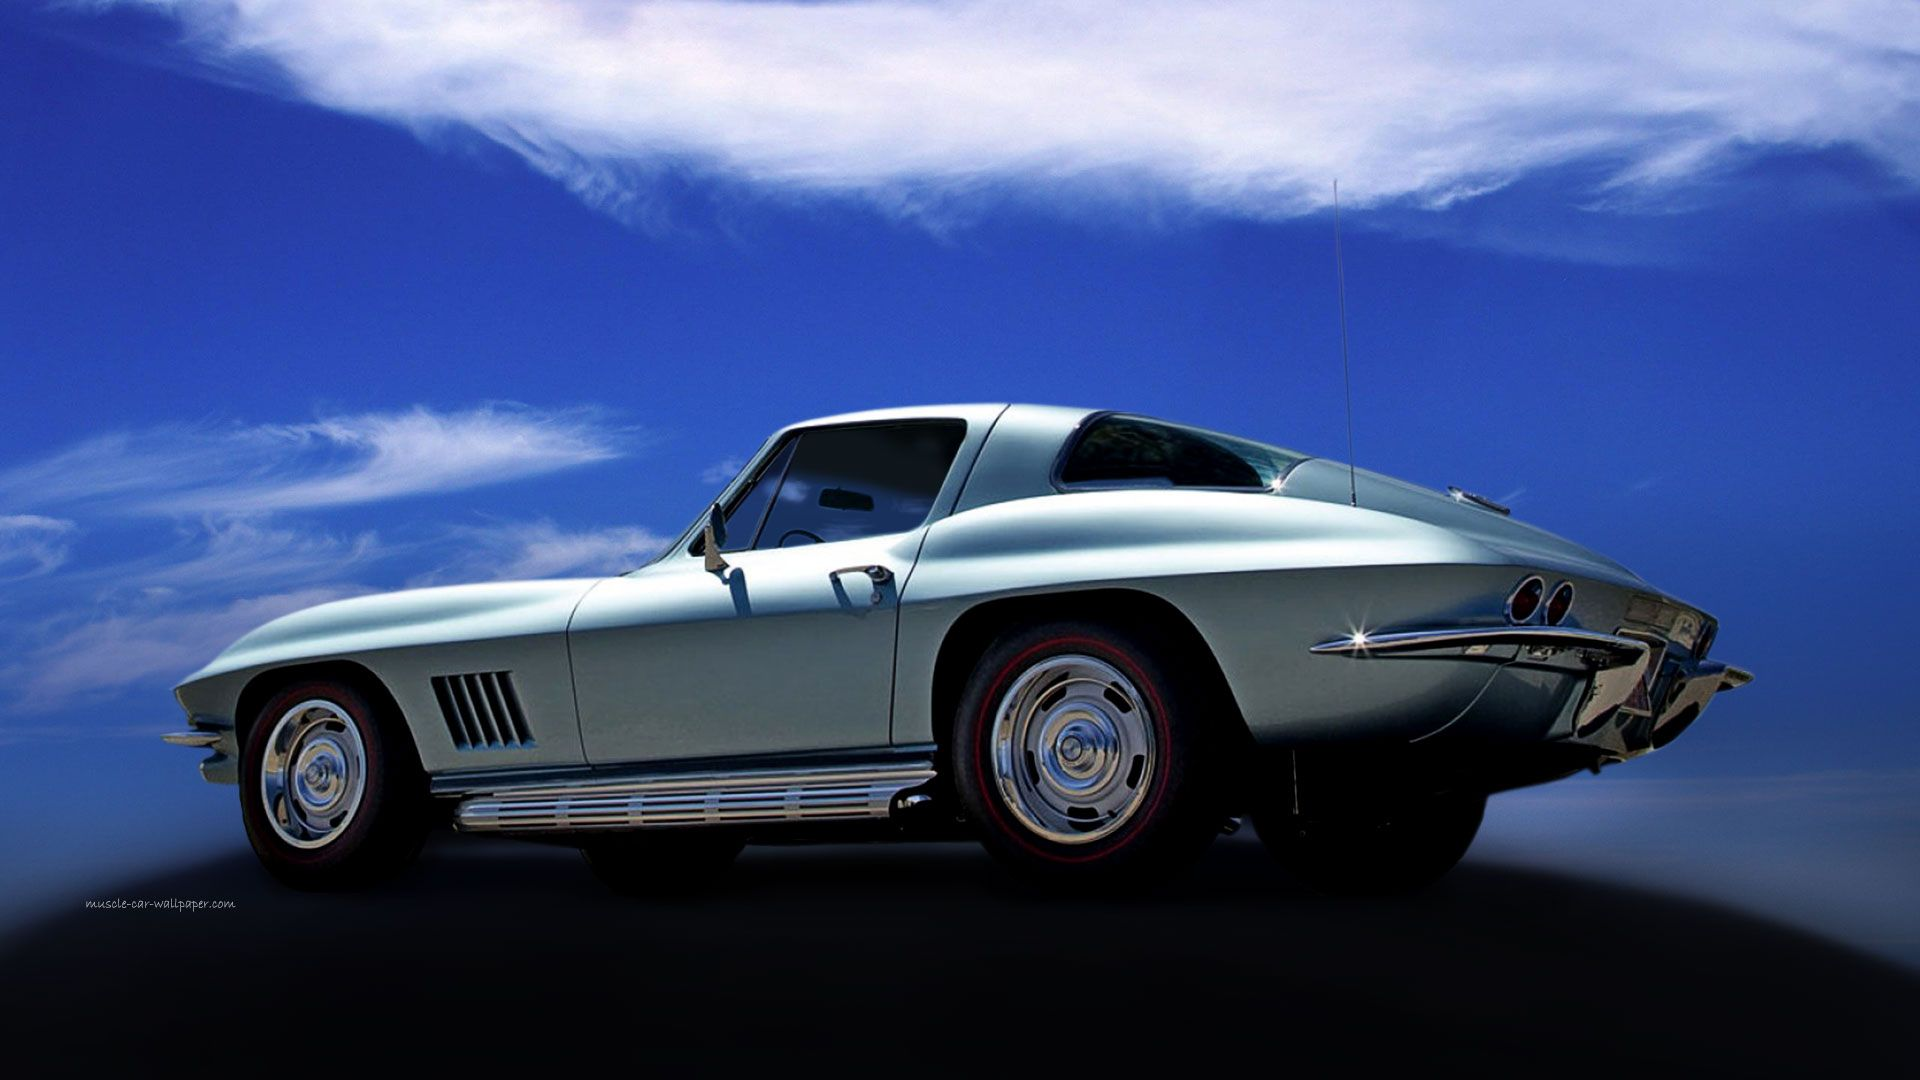 1967 Corvette Wallpapers